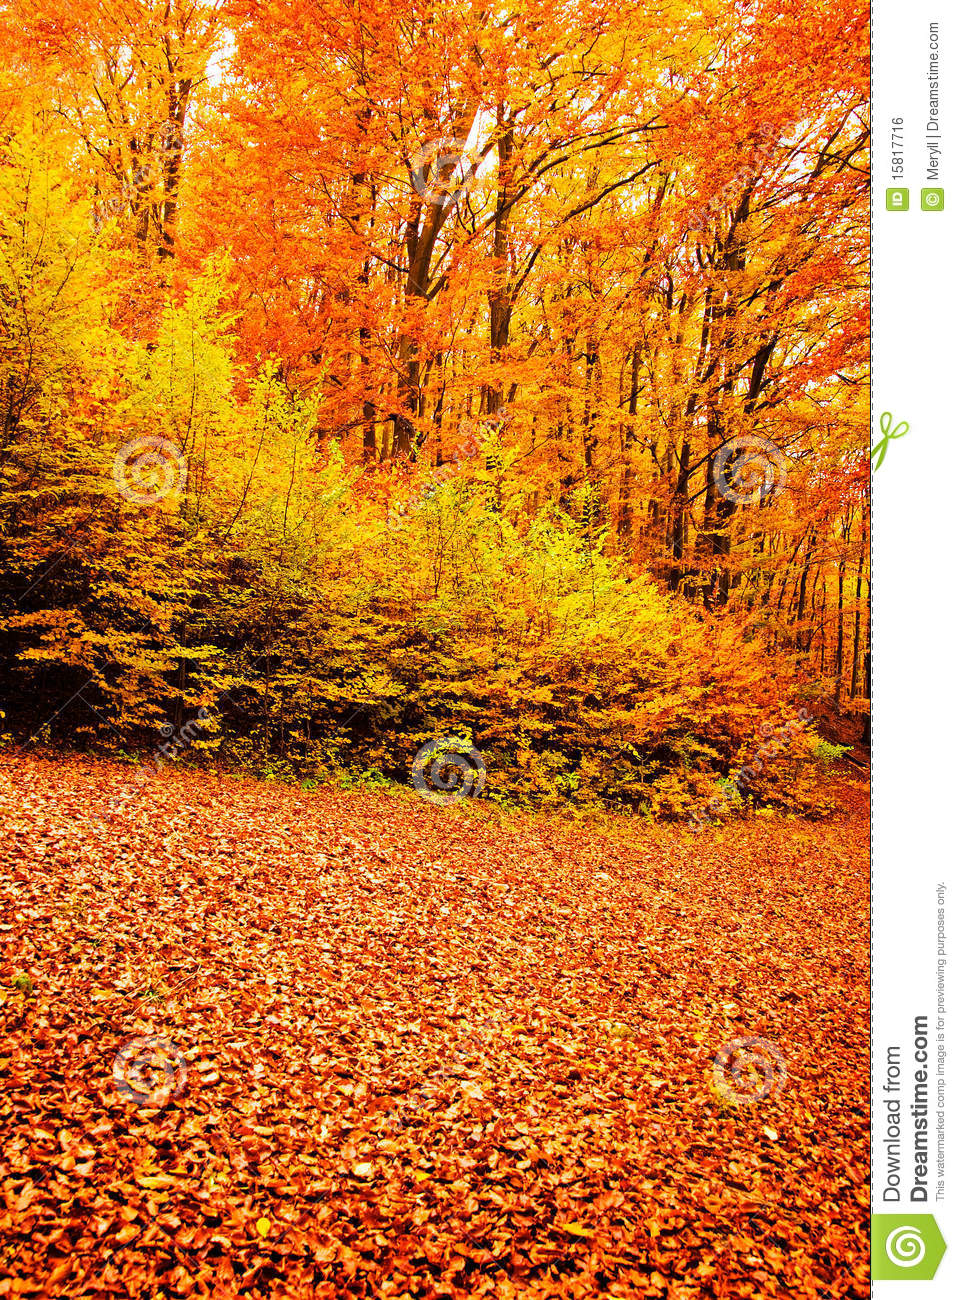 Fall Colors Wallpaper Background Autumn Forest Fall Nature Royalty Free Stock Image Image